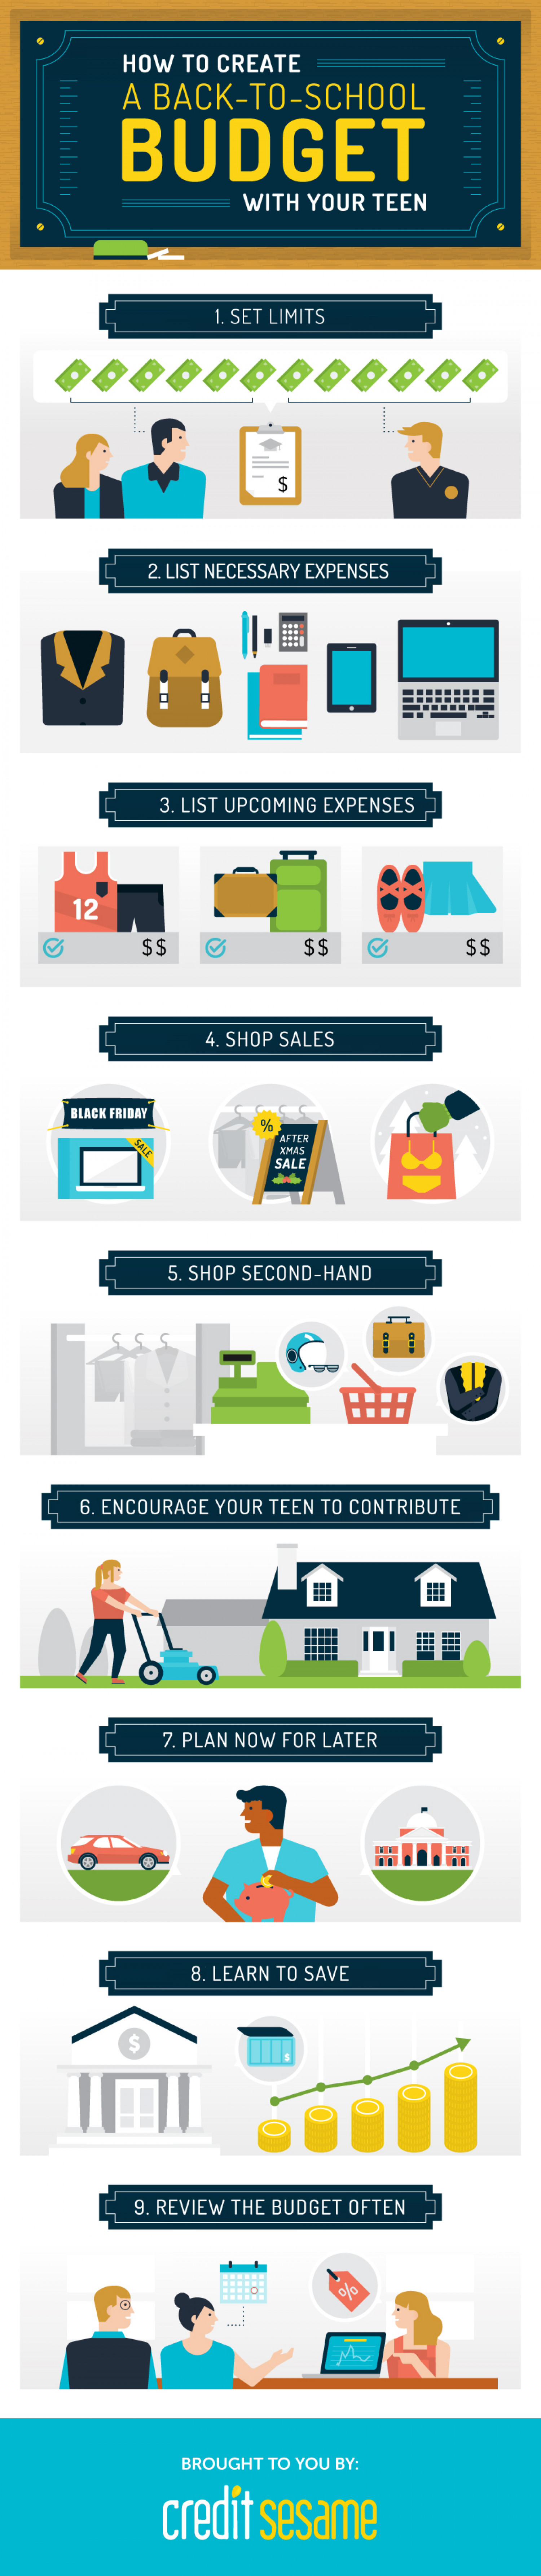 How to Create a Back to School Budget With Your Teen Infographic